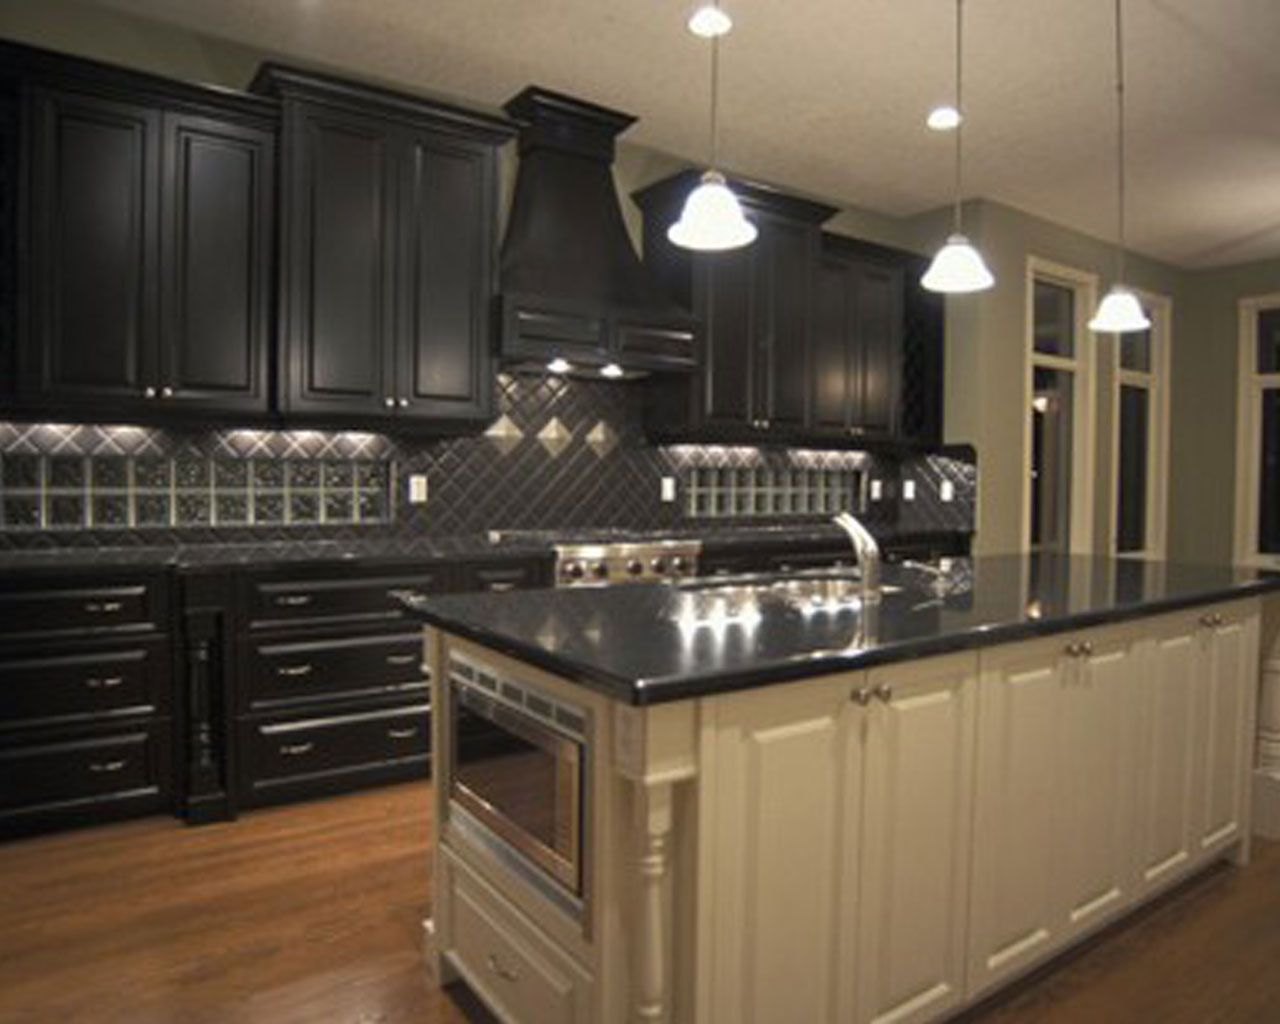 Finest Design Black Kitchen Cabinets Wallpapers | New house ...